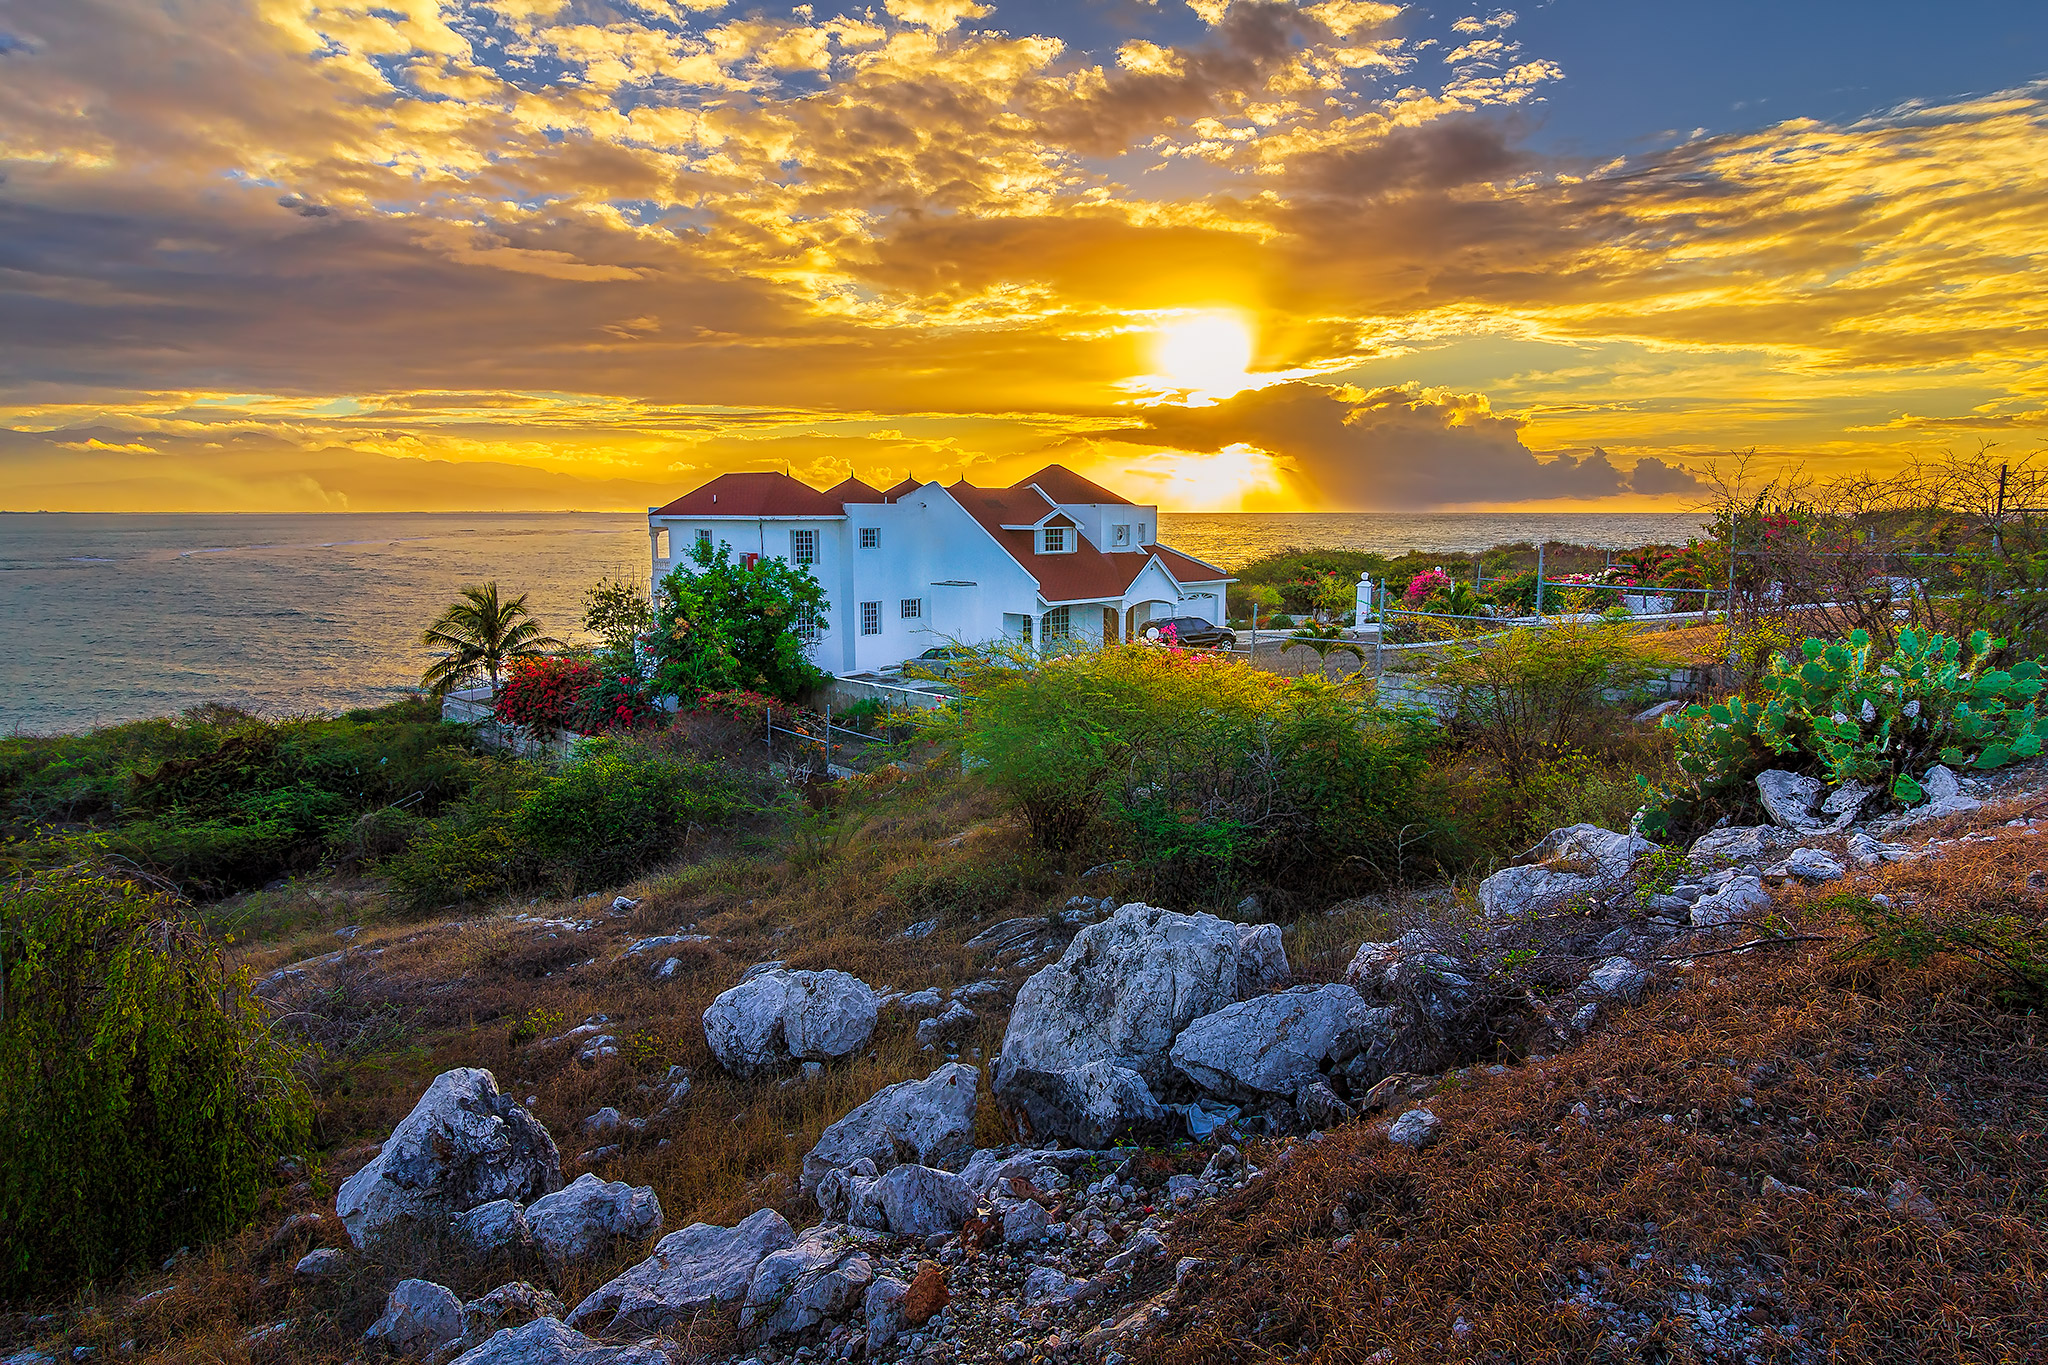 Early Morning in Hellshire, St Catherine, Jamaica.